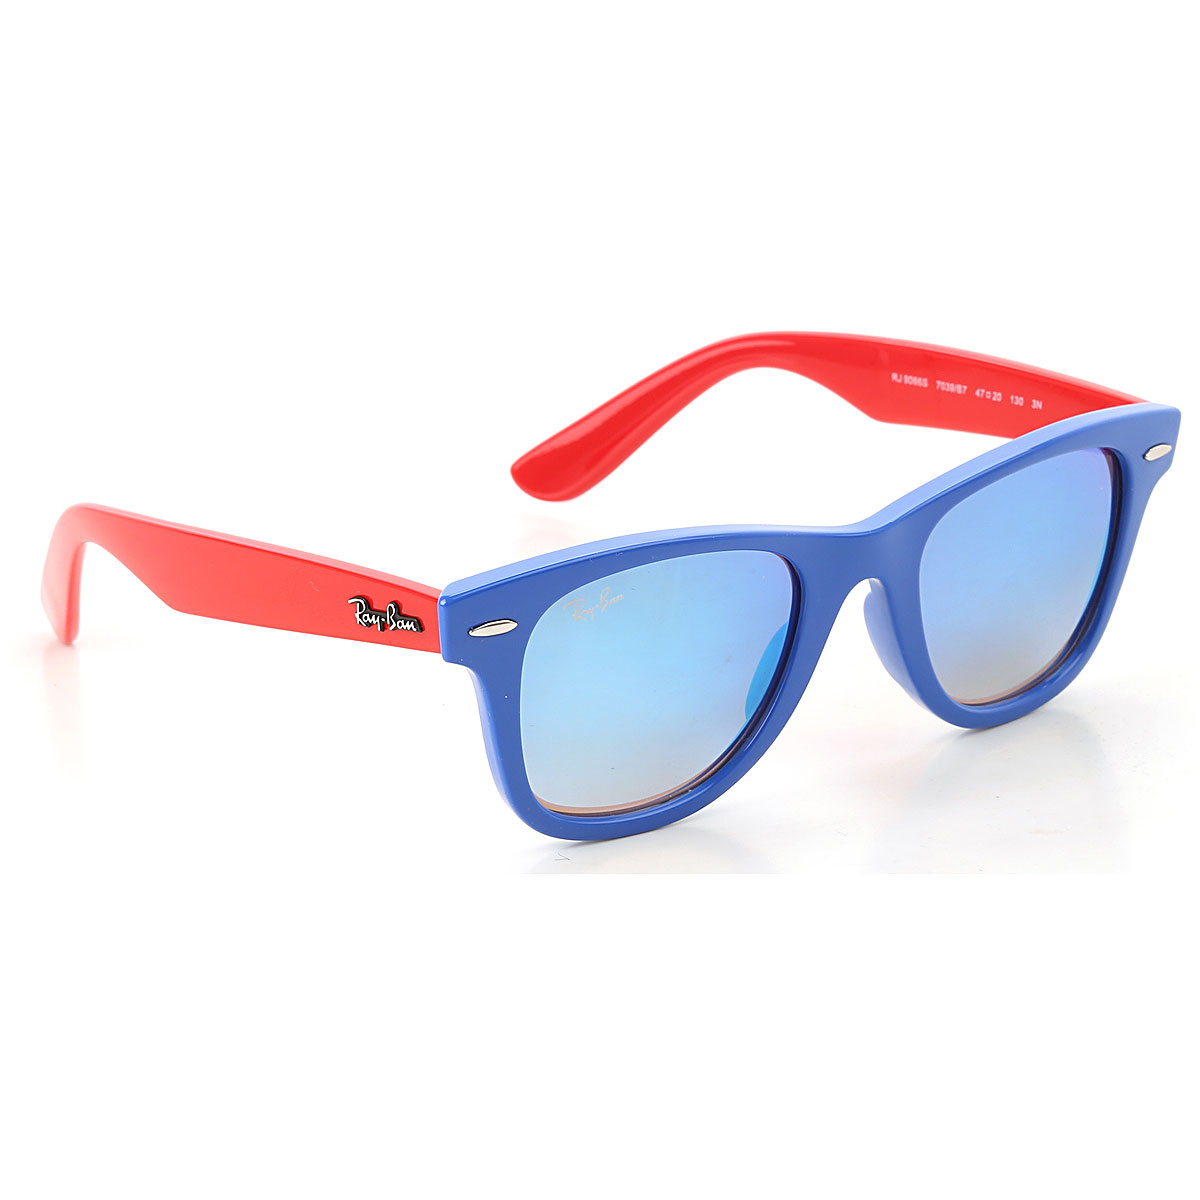 Image of Ray Ban Junior Kids Sunglasses for Boys On Sale, Electric Blue, 2017